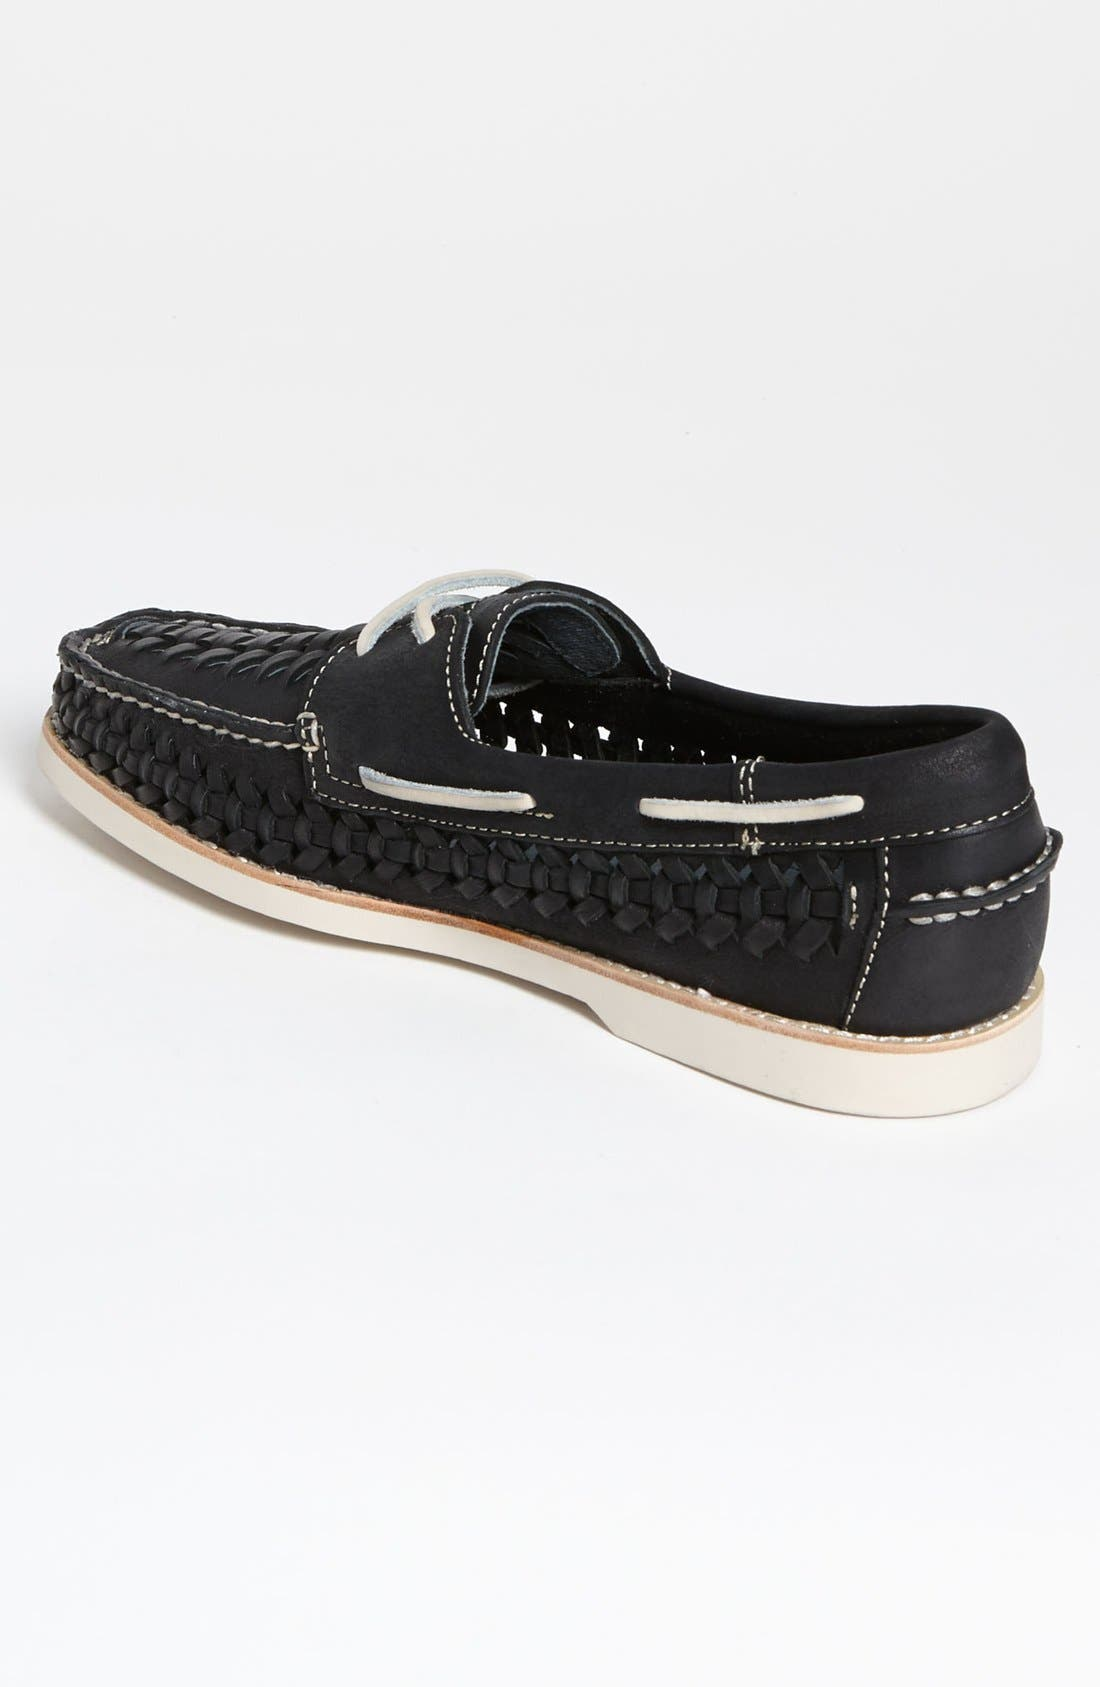 SPERRY,                             Top-Sider<sup>®</sup> 'Seaside' Woven Boat Shoe,                             Alternate thumbnail 4, color,                             001